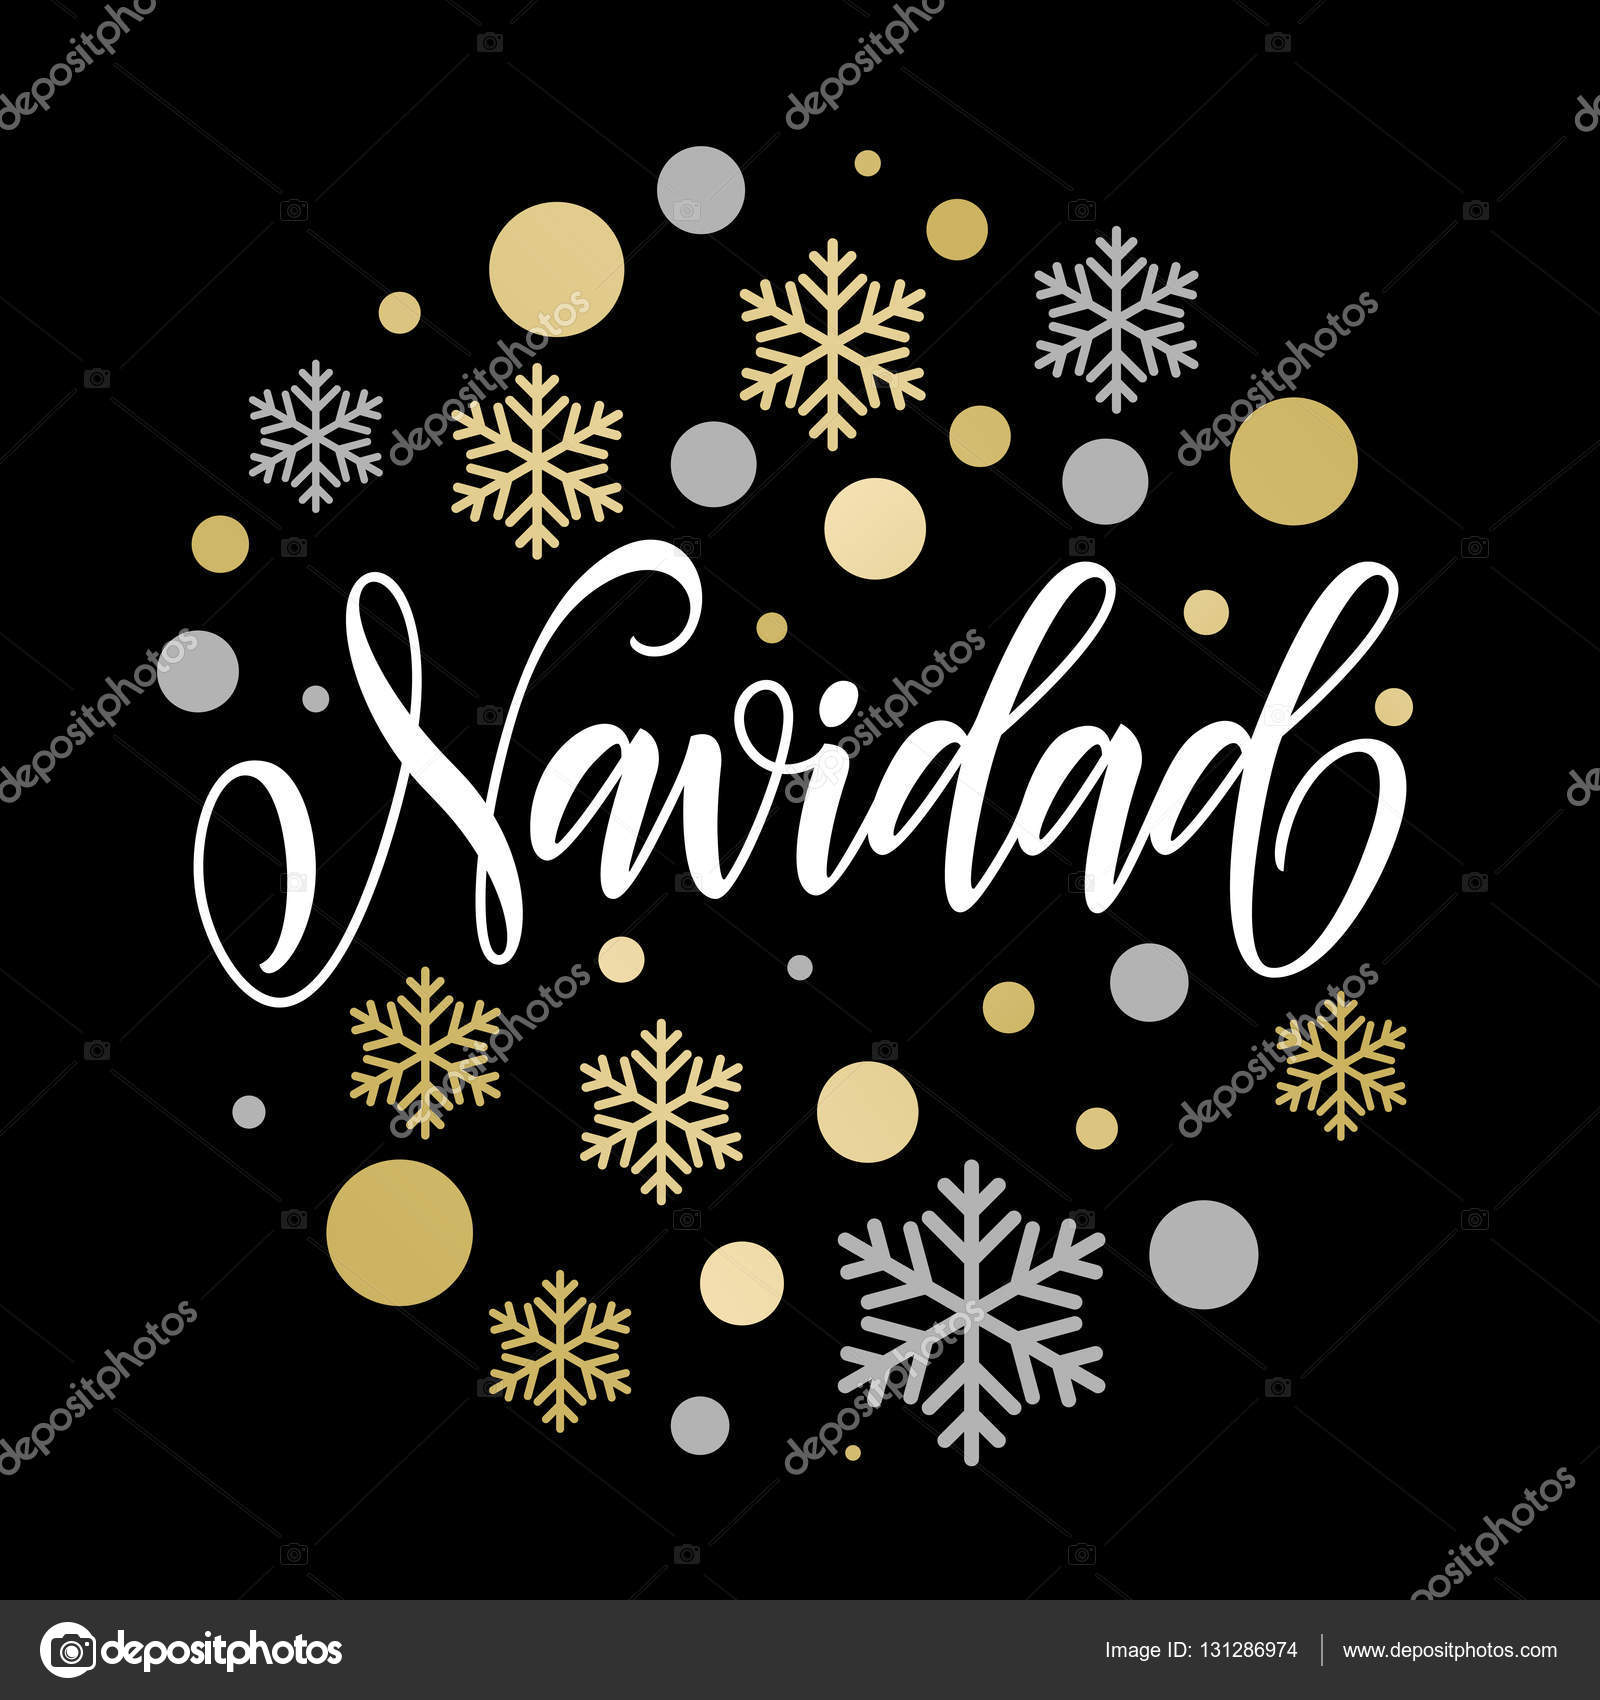 Merry christmas in spanish navidad text for greeting card stock spanish greeting for merry christmas feliz navidad card with golden and silver christmas ornaments decoration of snowflakes calligraphic lettering design kristyandbryce Images